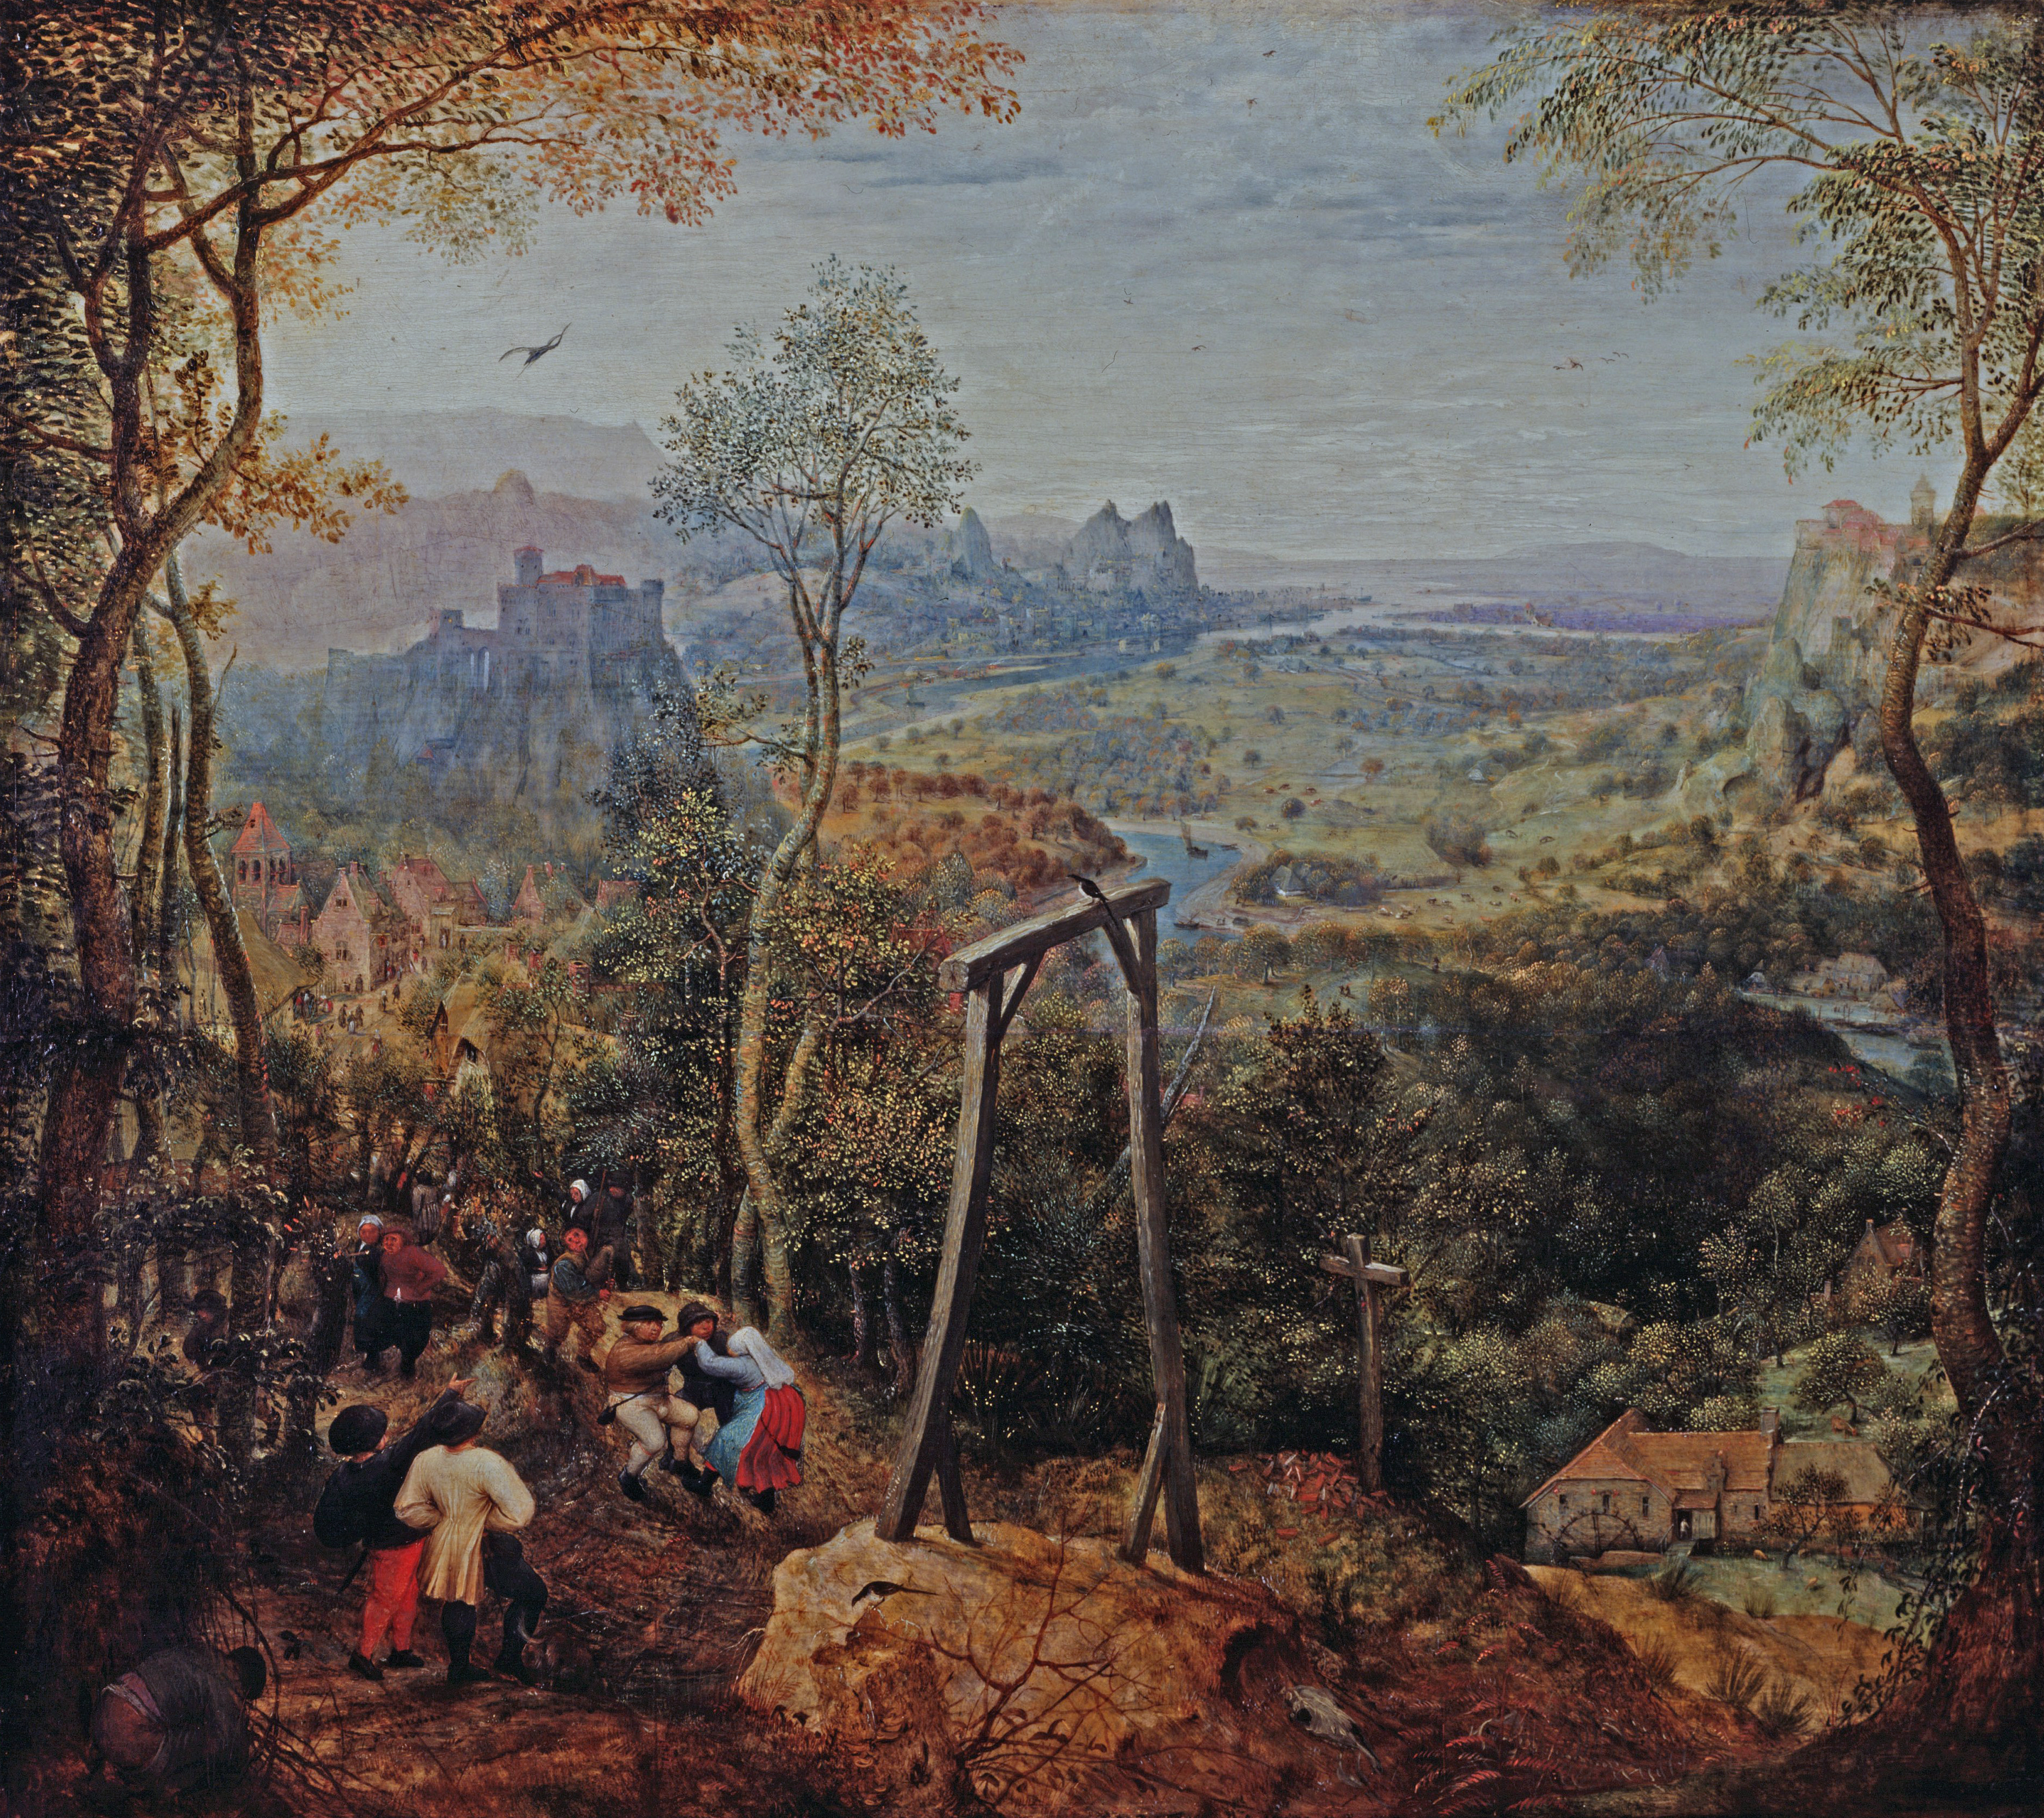 The Magpie on the Gallows, by Pieter Brueghel the Elder